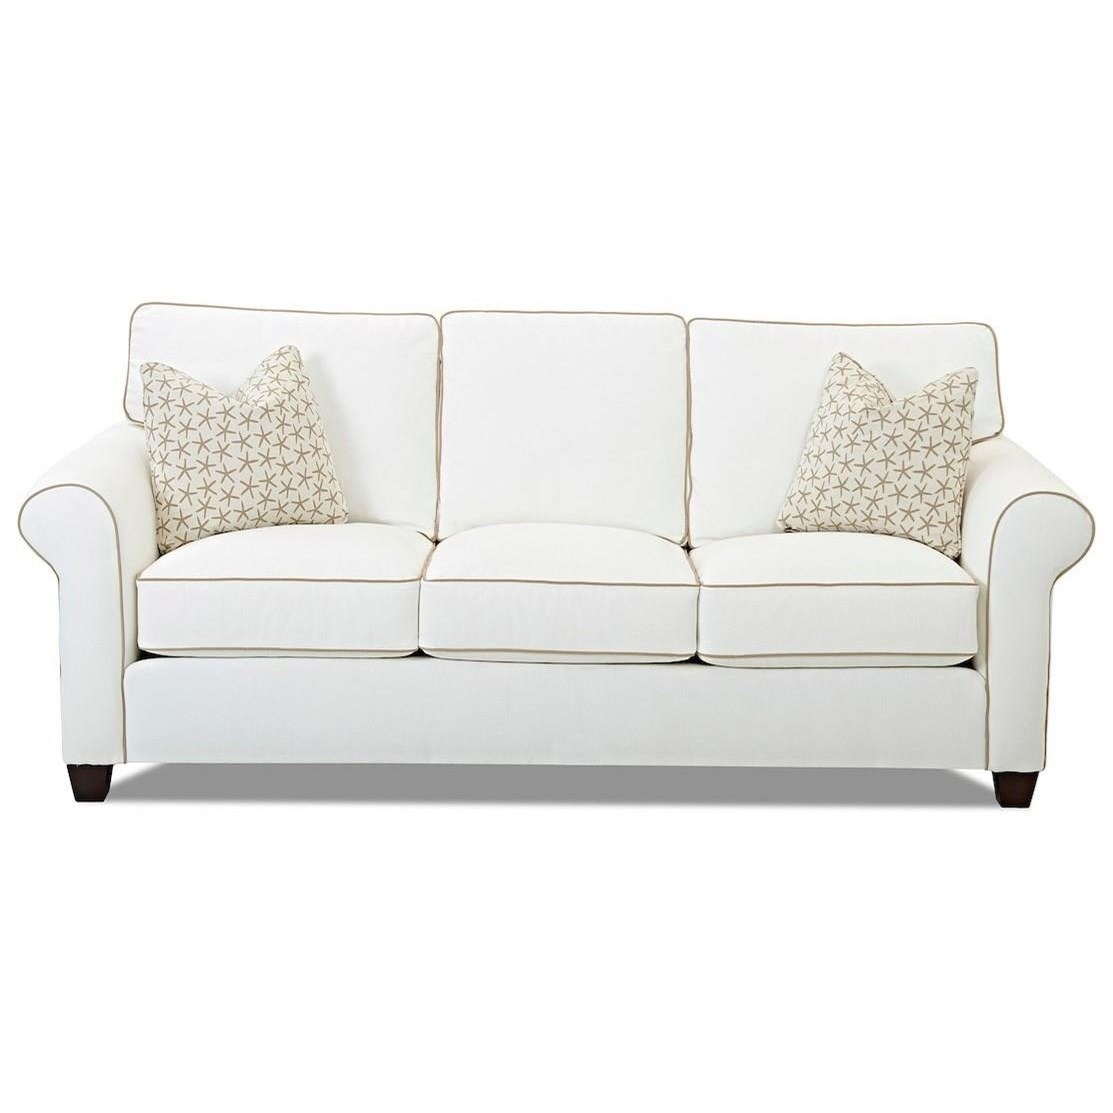 Lillington Extra Large Sofa (90 Inch) by Klaussner at Northeast Factory Direct